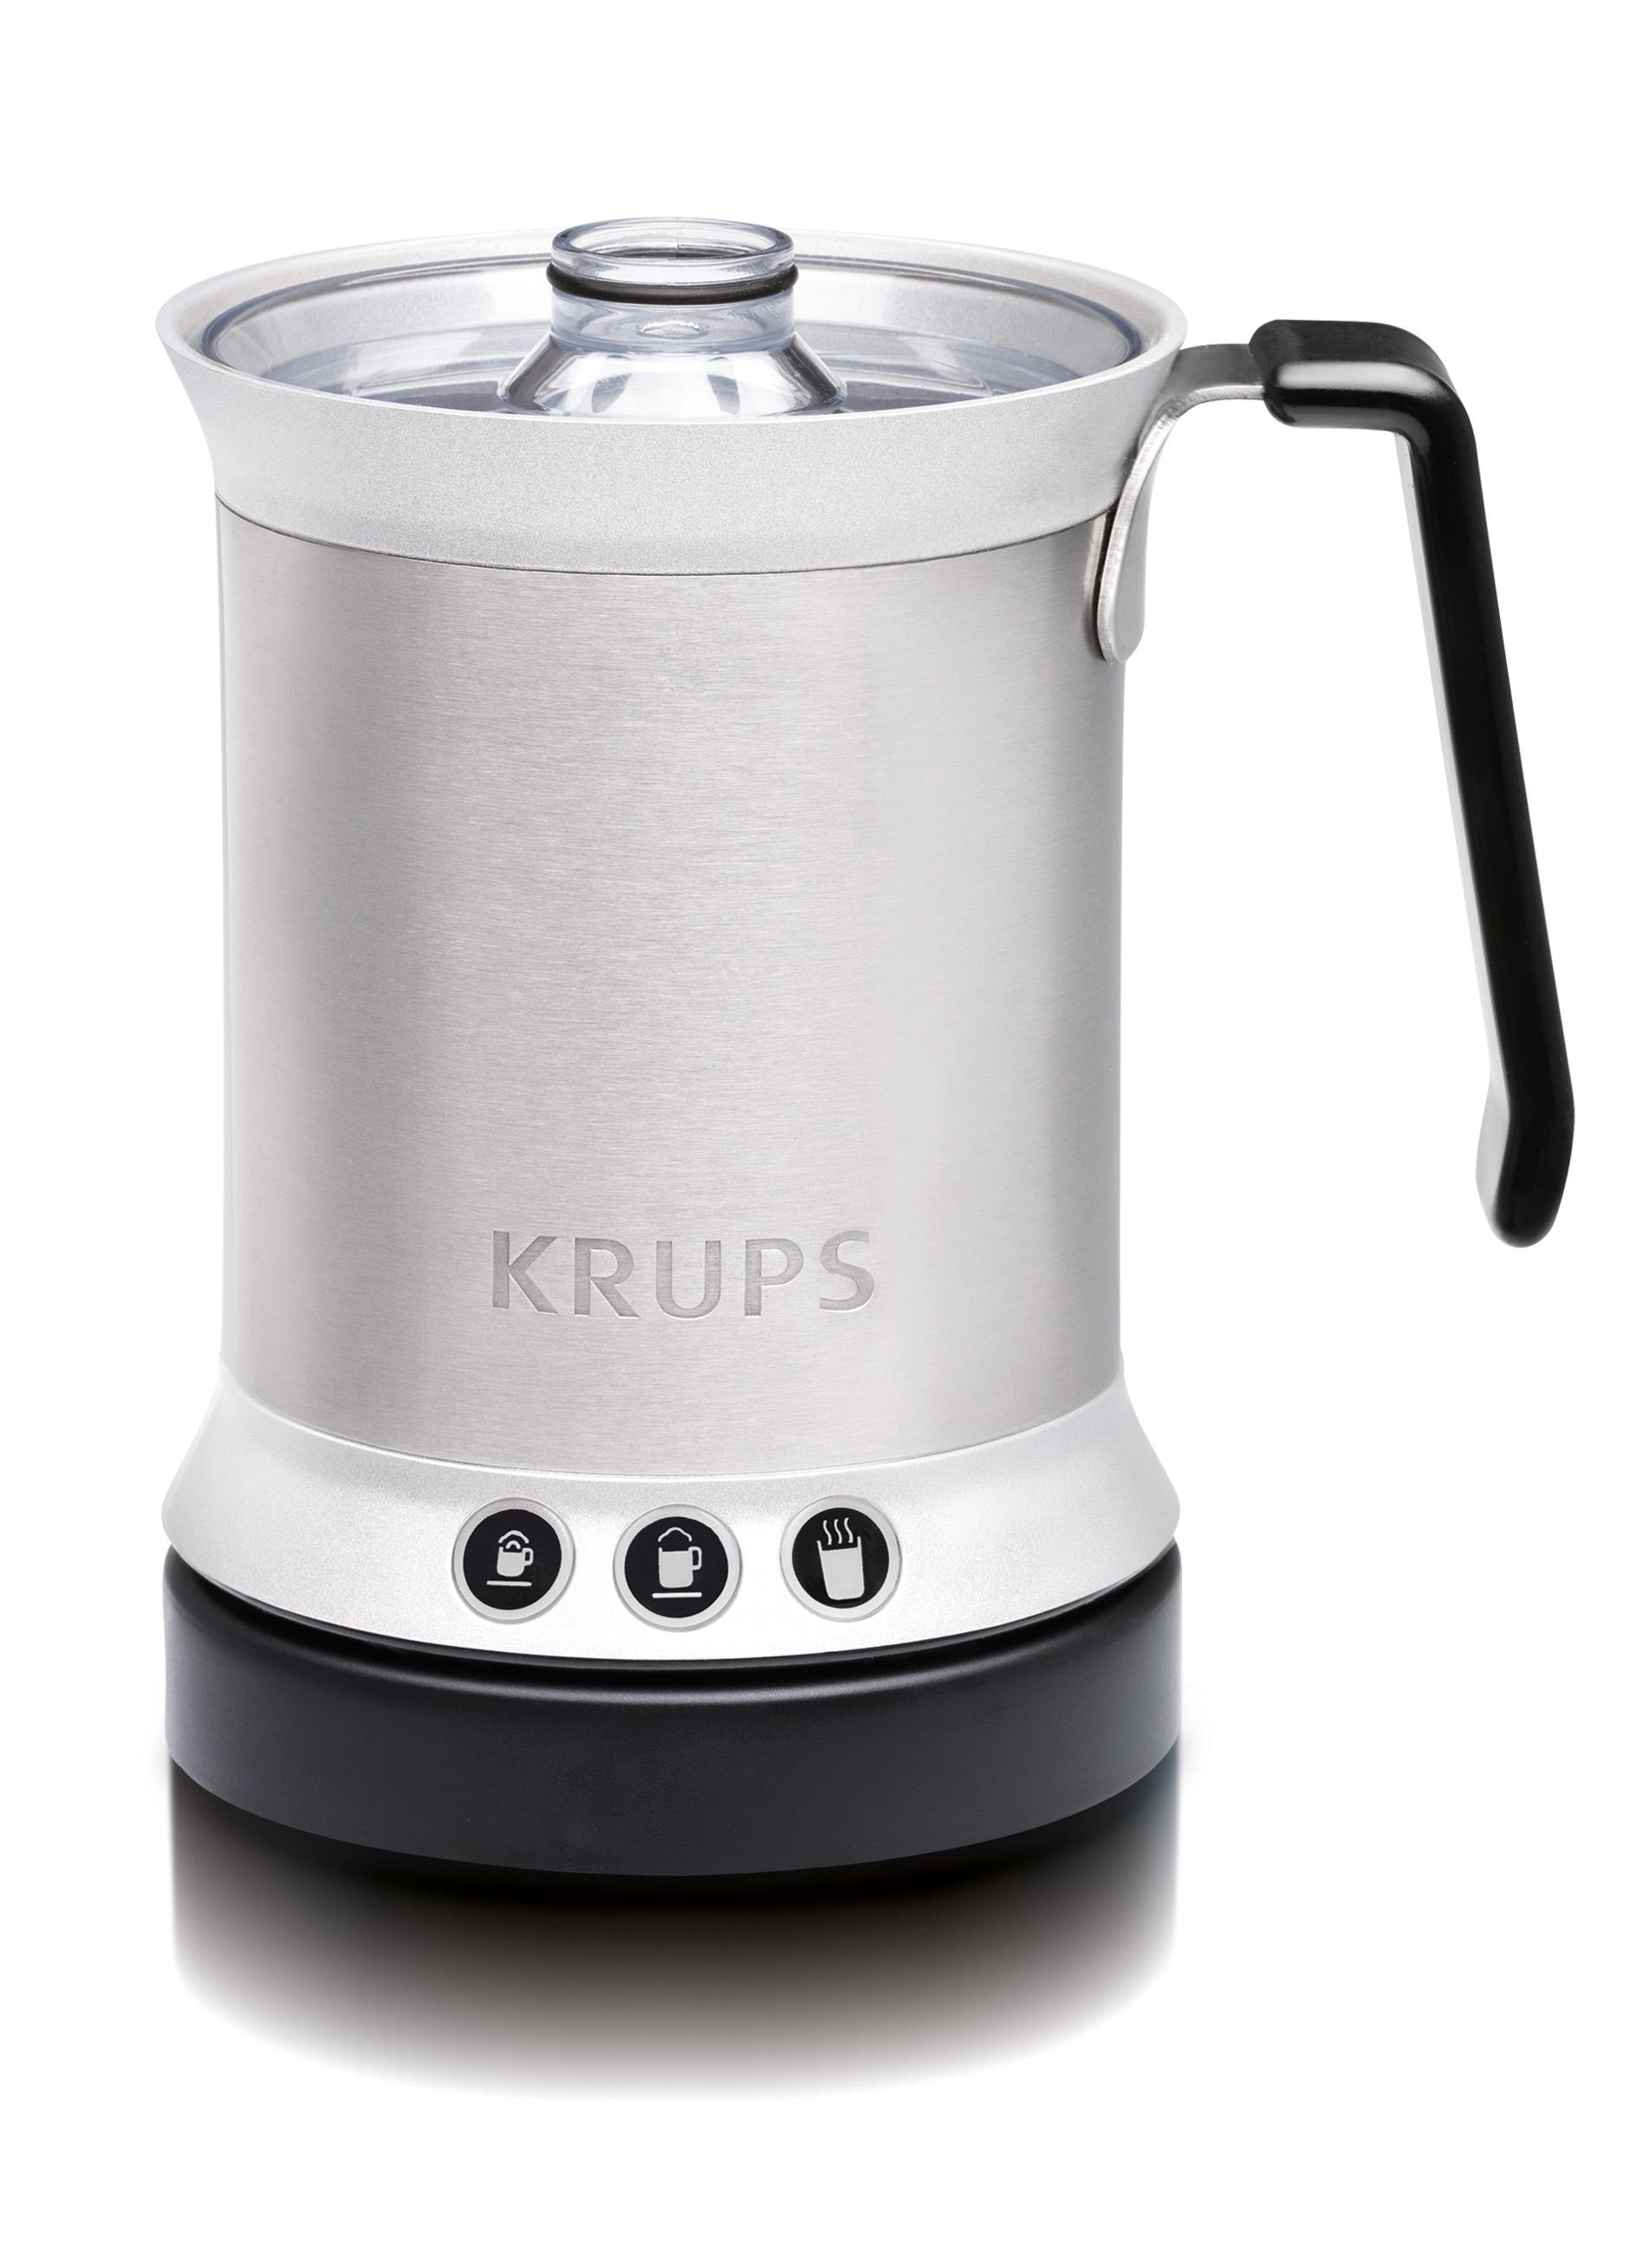 krups xl2000 electric milk frother for cappuccino latte and hot milk 0 3 quart. Black Bedroom Furniture Sets. Home Design Ideas